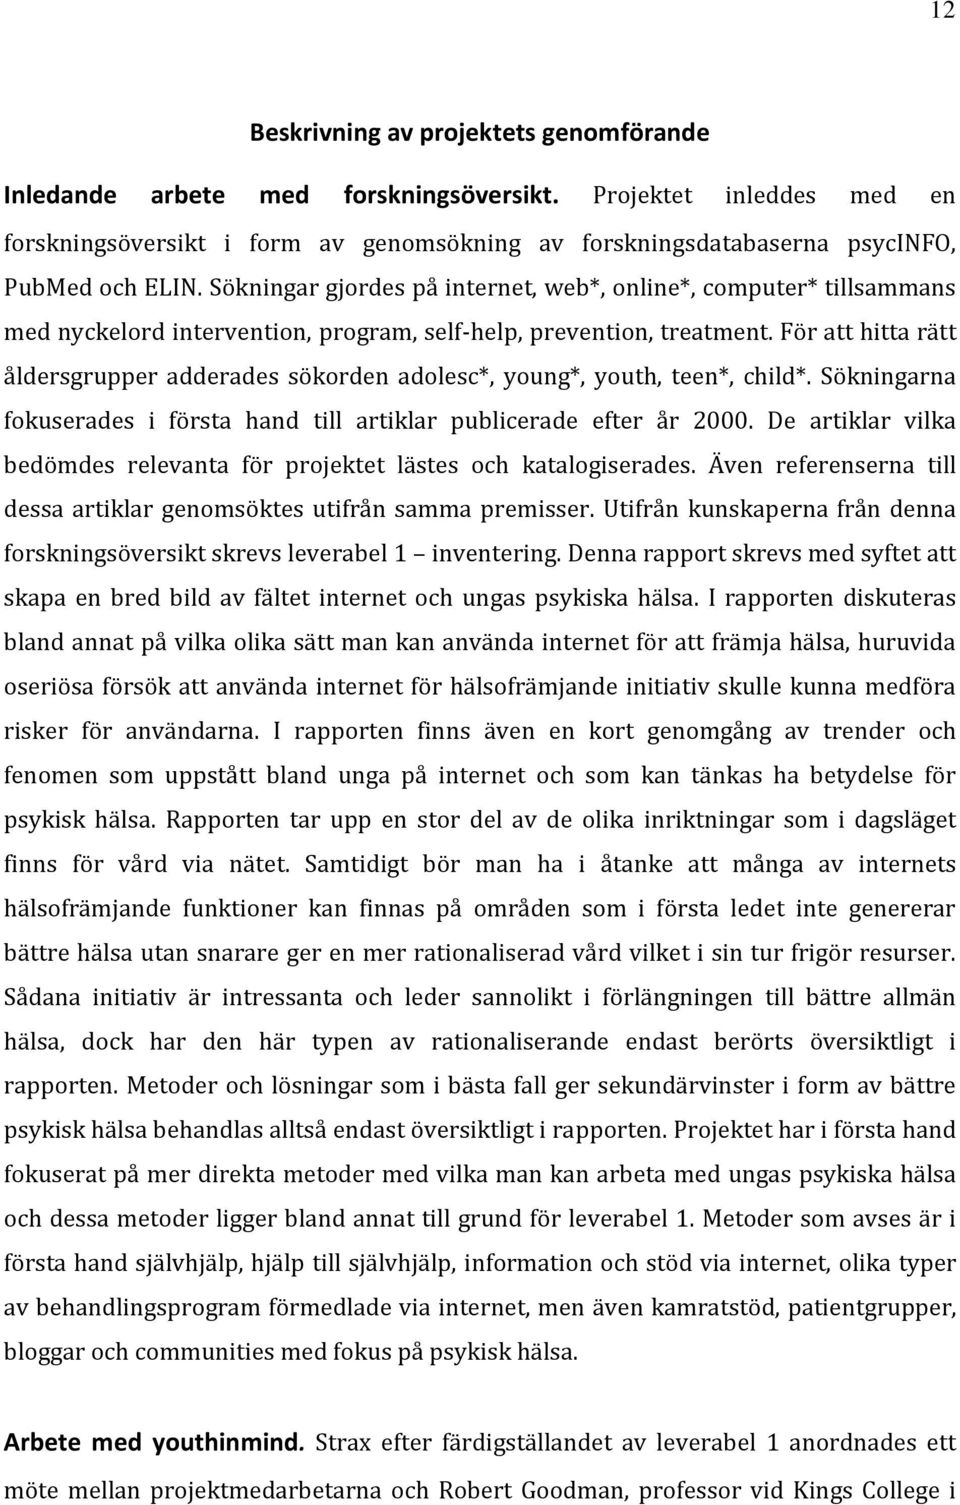 Sökningar gjordes på internet, web*, online*, computer* tillsammans med nyckelord intervention, program, self-help, prevention, treatment.